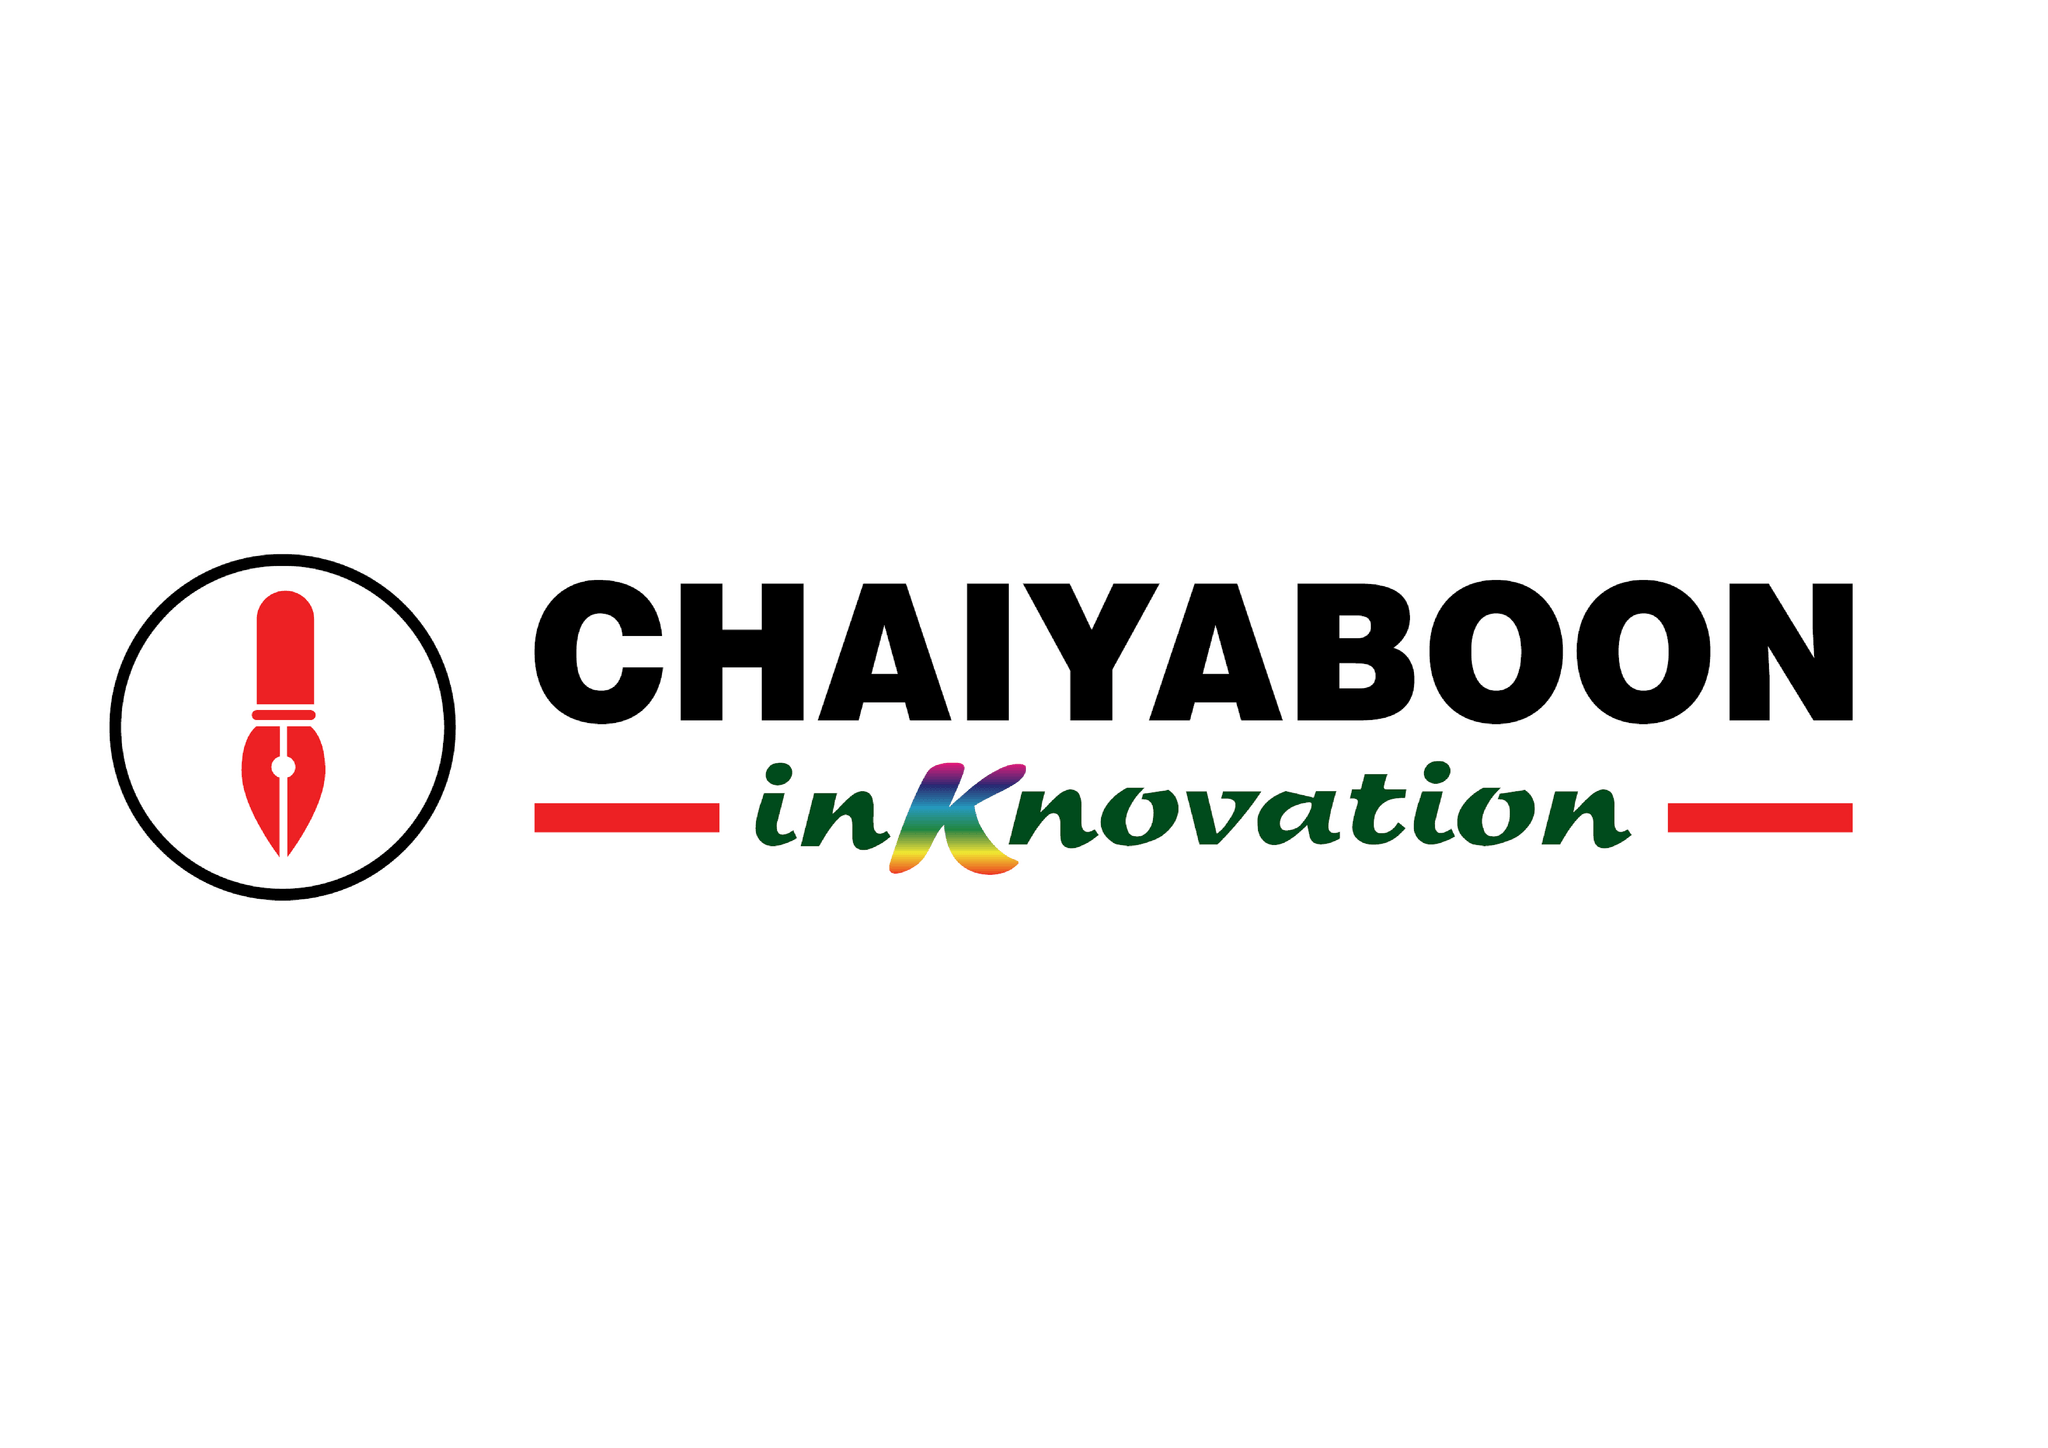 Chaiyaboon Brothers Co Ltd